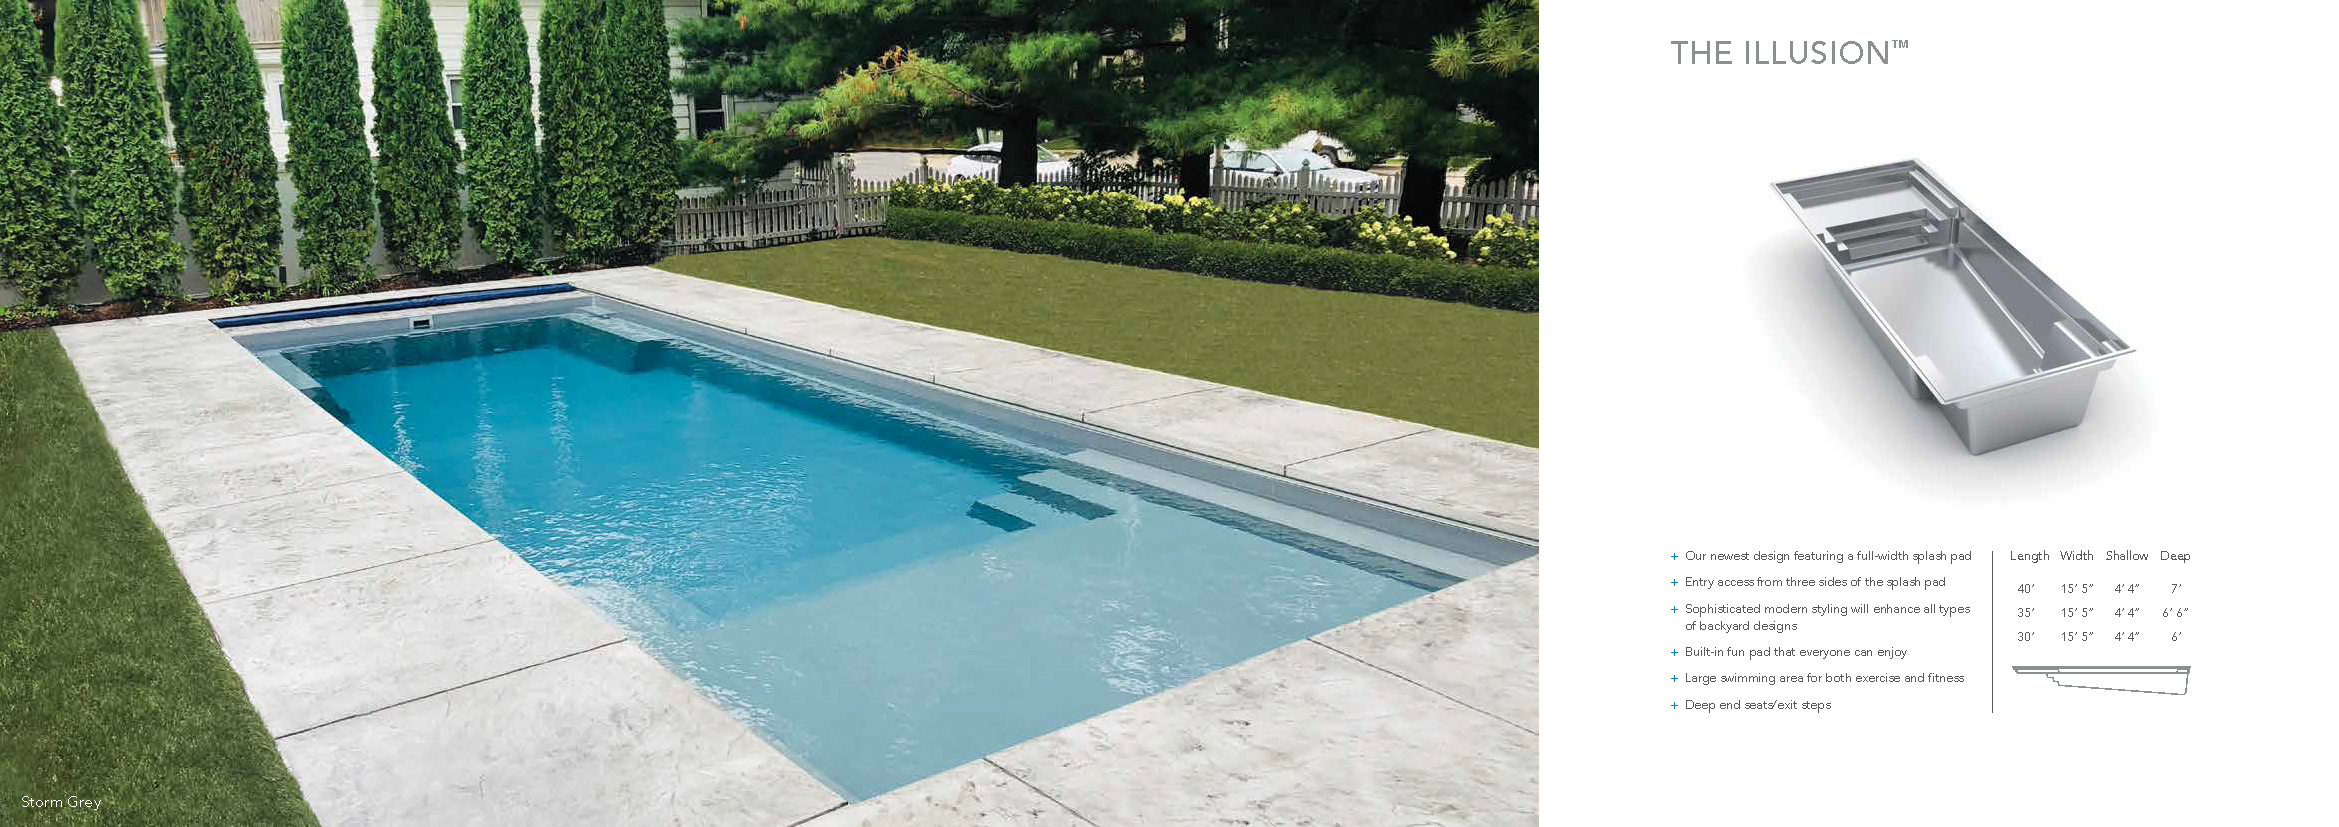 Imagine Pools Consumer Brochure 2018-1001_Page_12